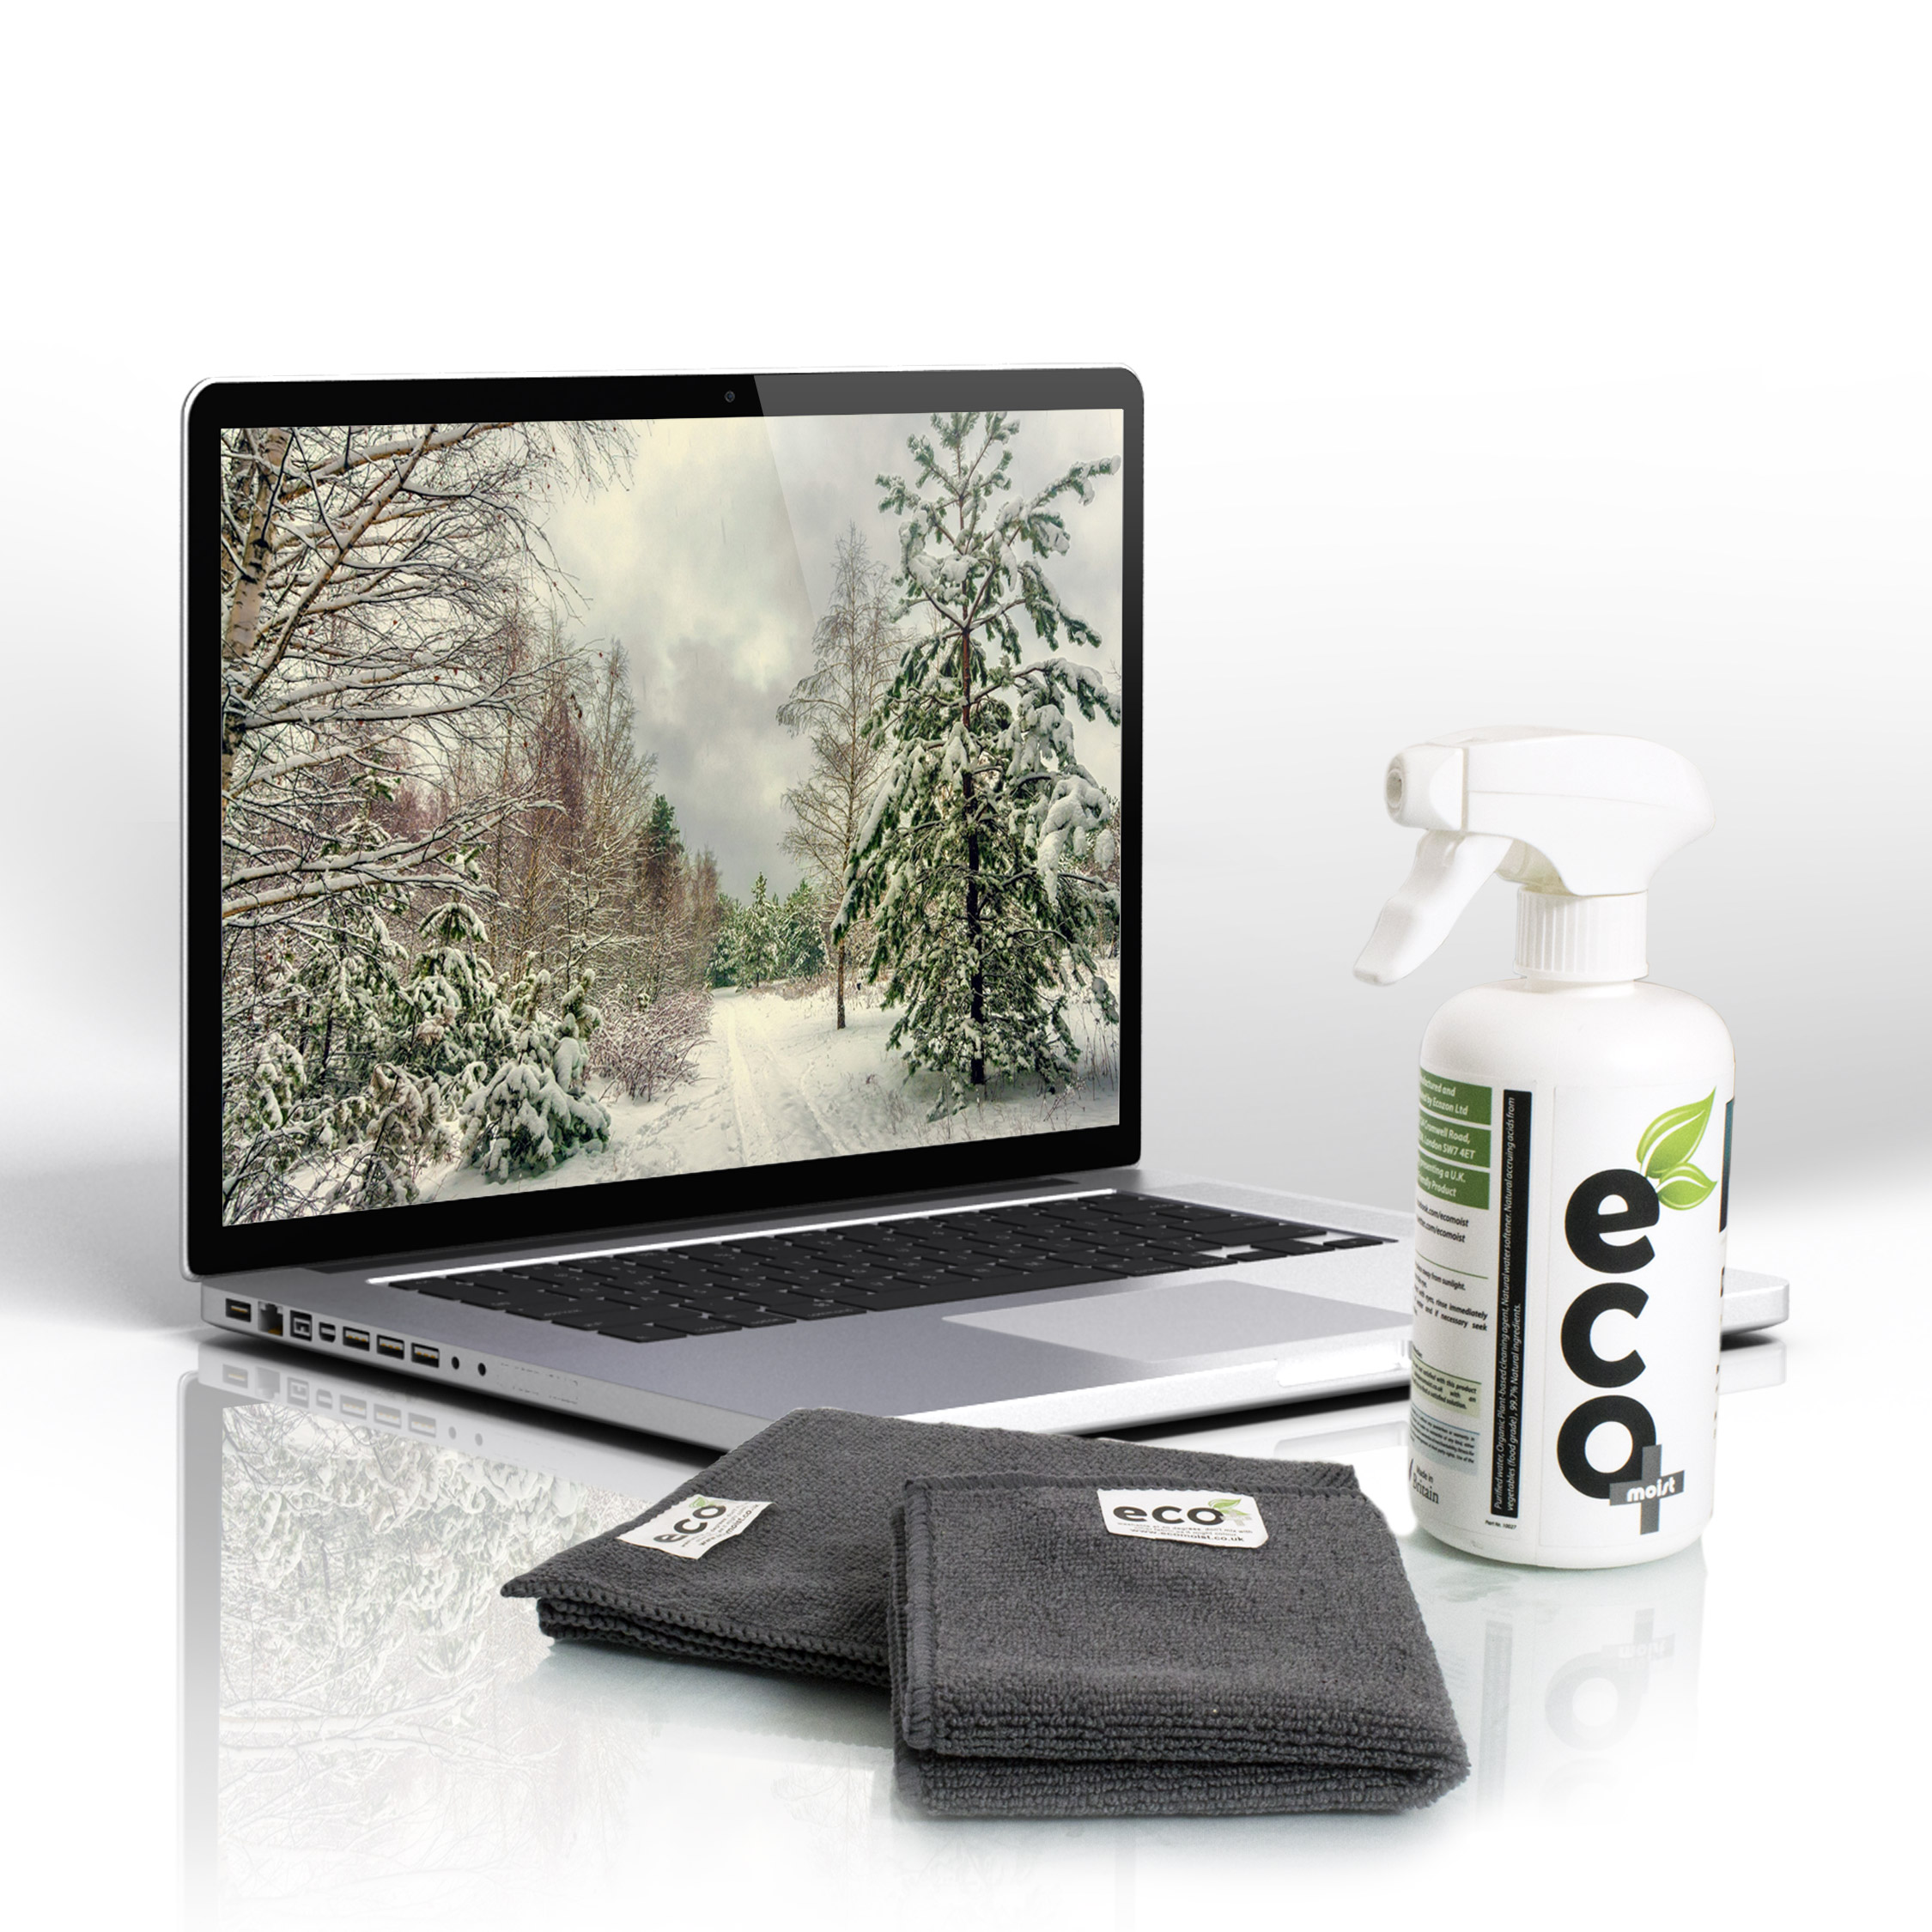 Ecomoist Screen Cleaner 500ml and Notebooks